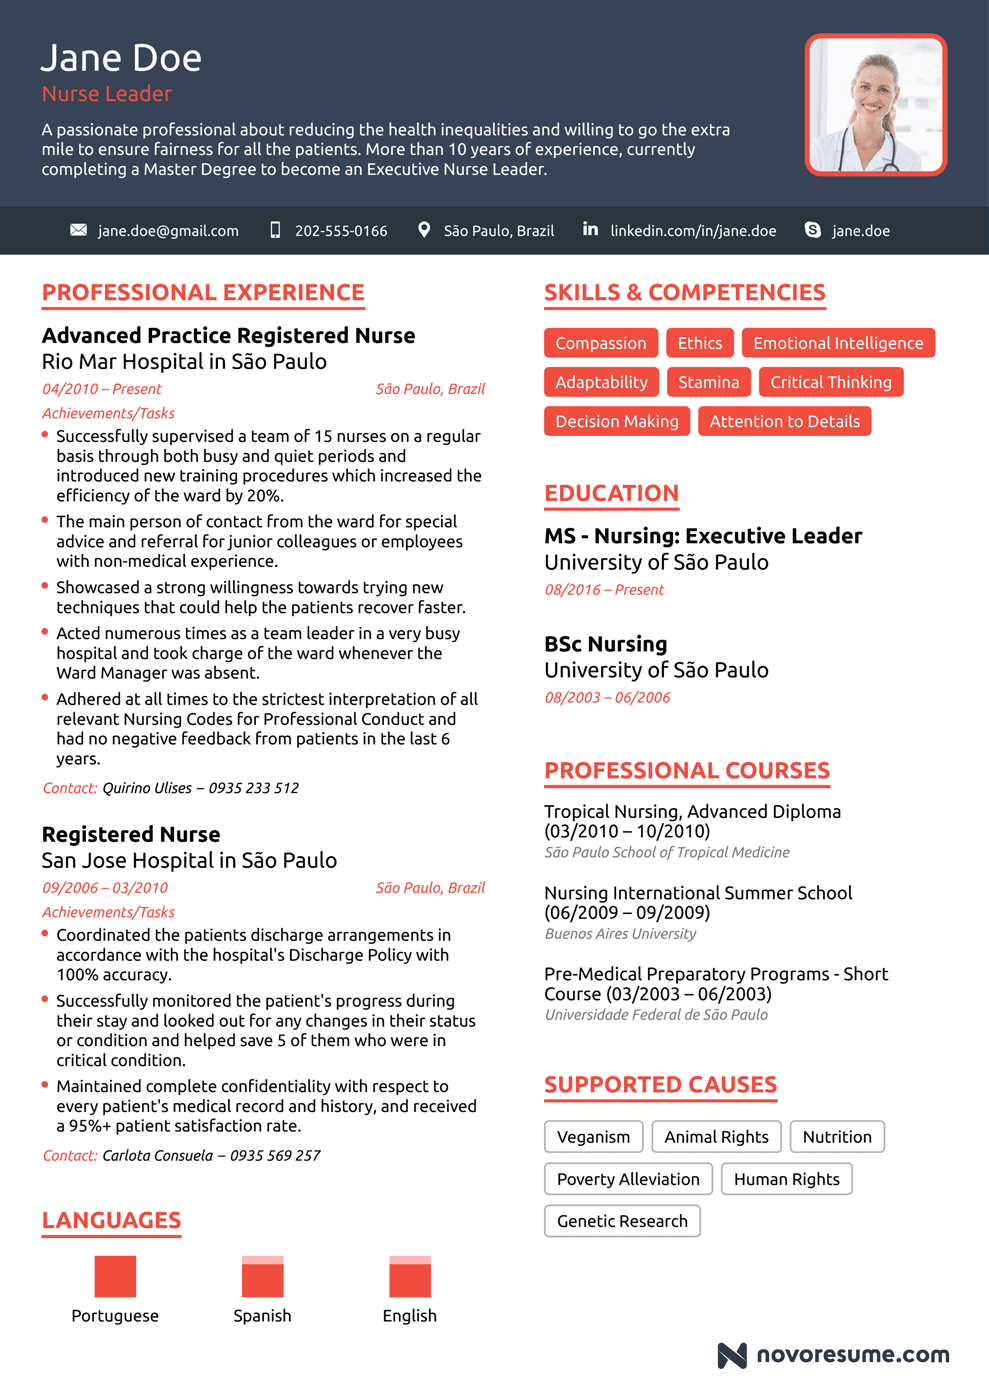 Nurse resume example 2018 nursing resume example 2018 altavistaventures Images